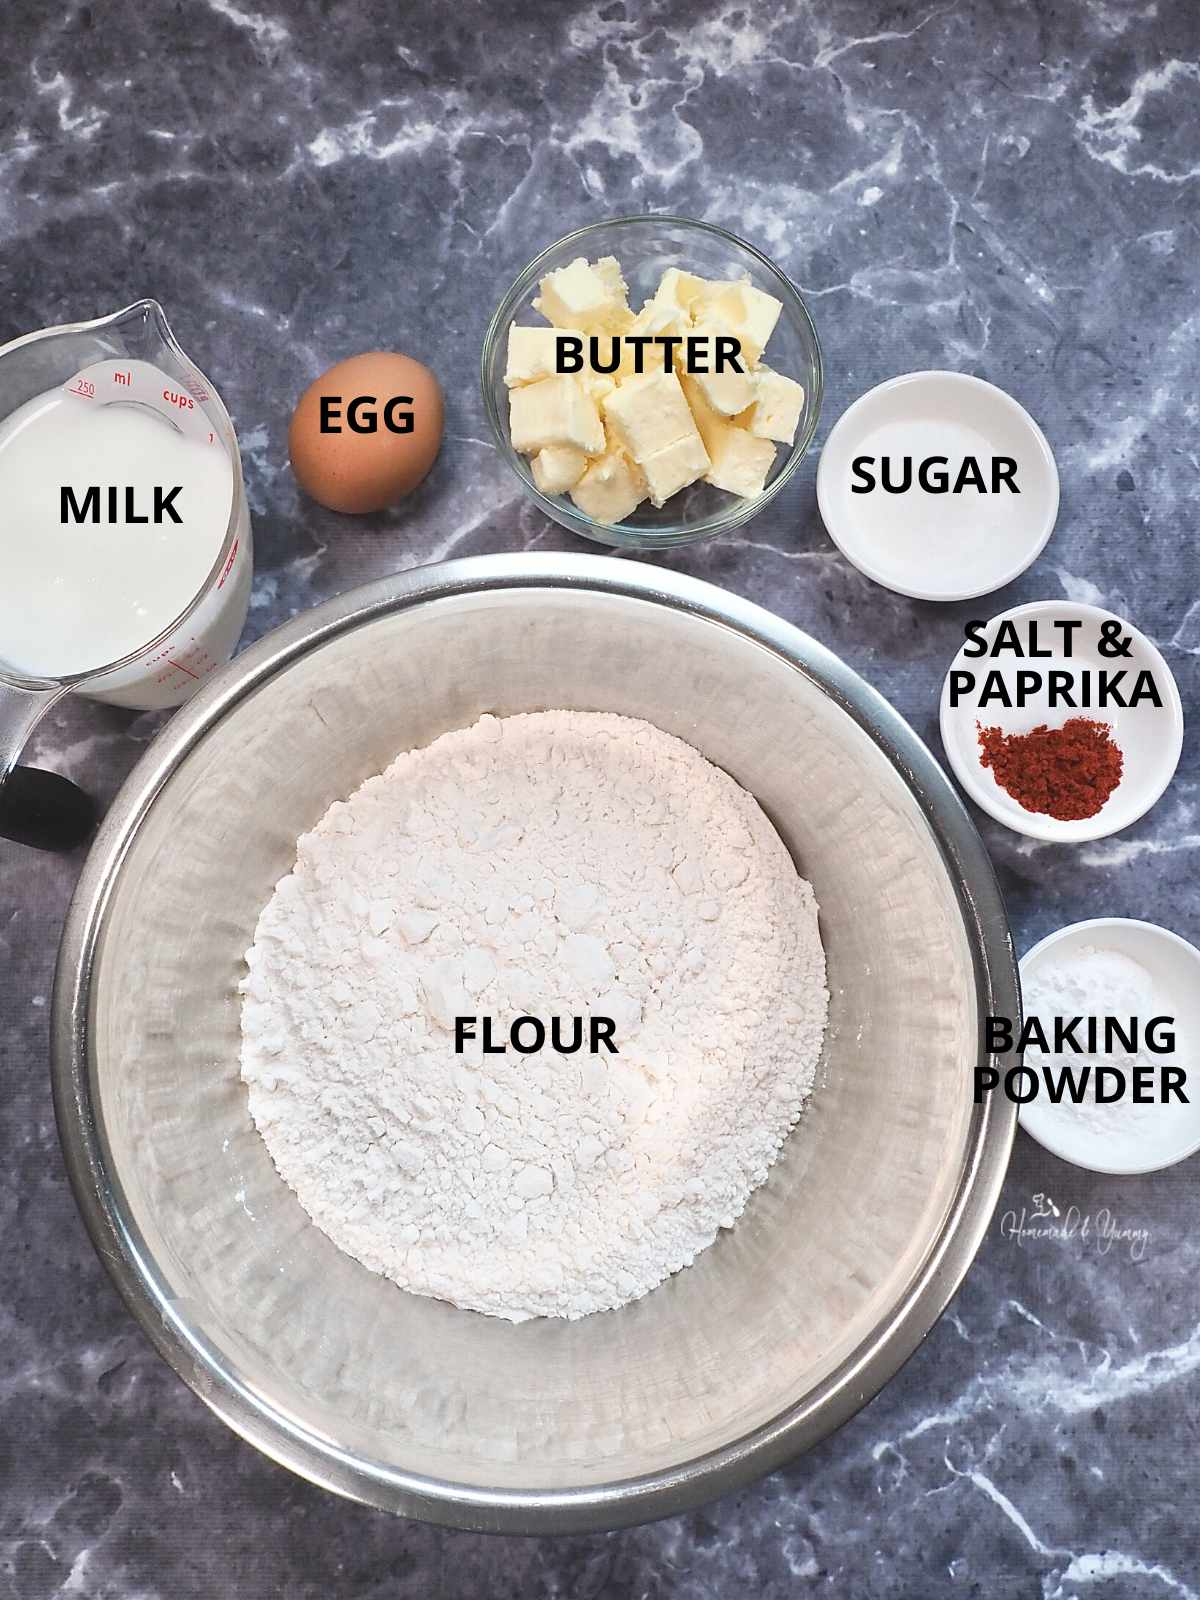 Ingredients to making baking powder biscuits.